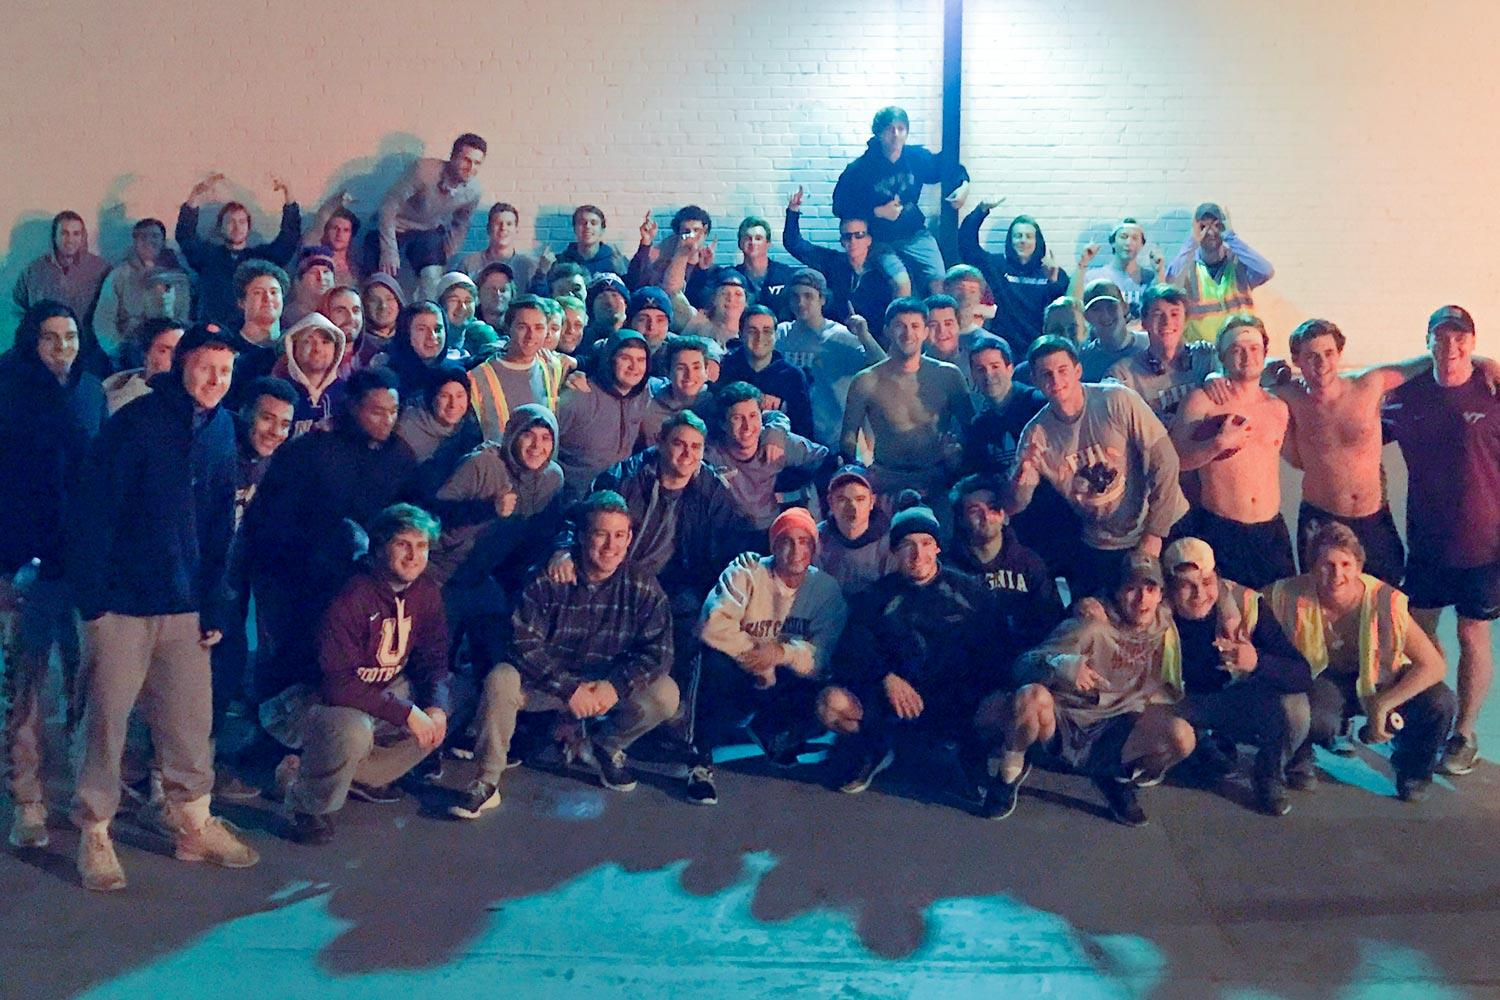 Members of UVA's Phi Gamma Delta fraternity chapter paused for a photo before completing the 15th annual Run Across Virginia on Friday night. The run raises money for the V Foundation to fund cancer research.